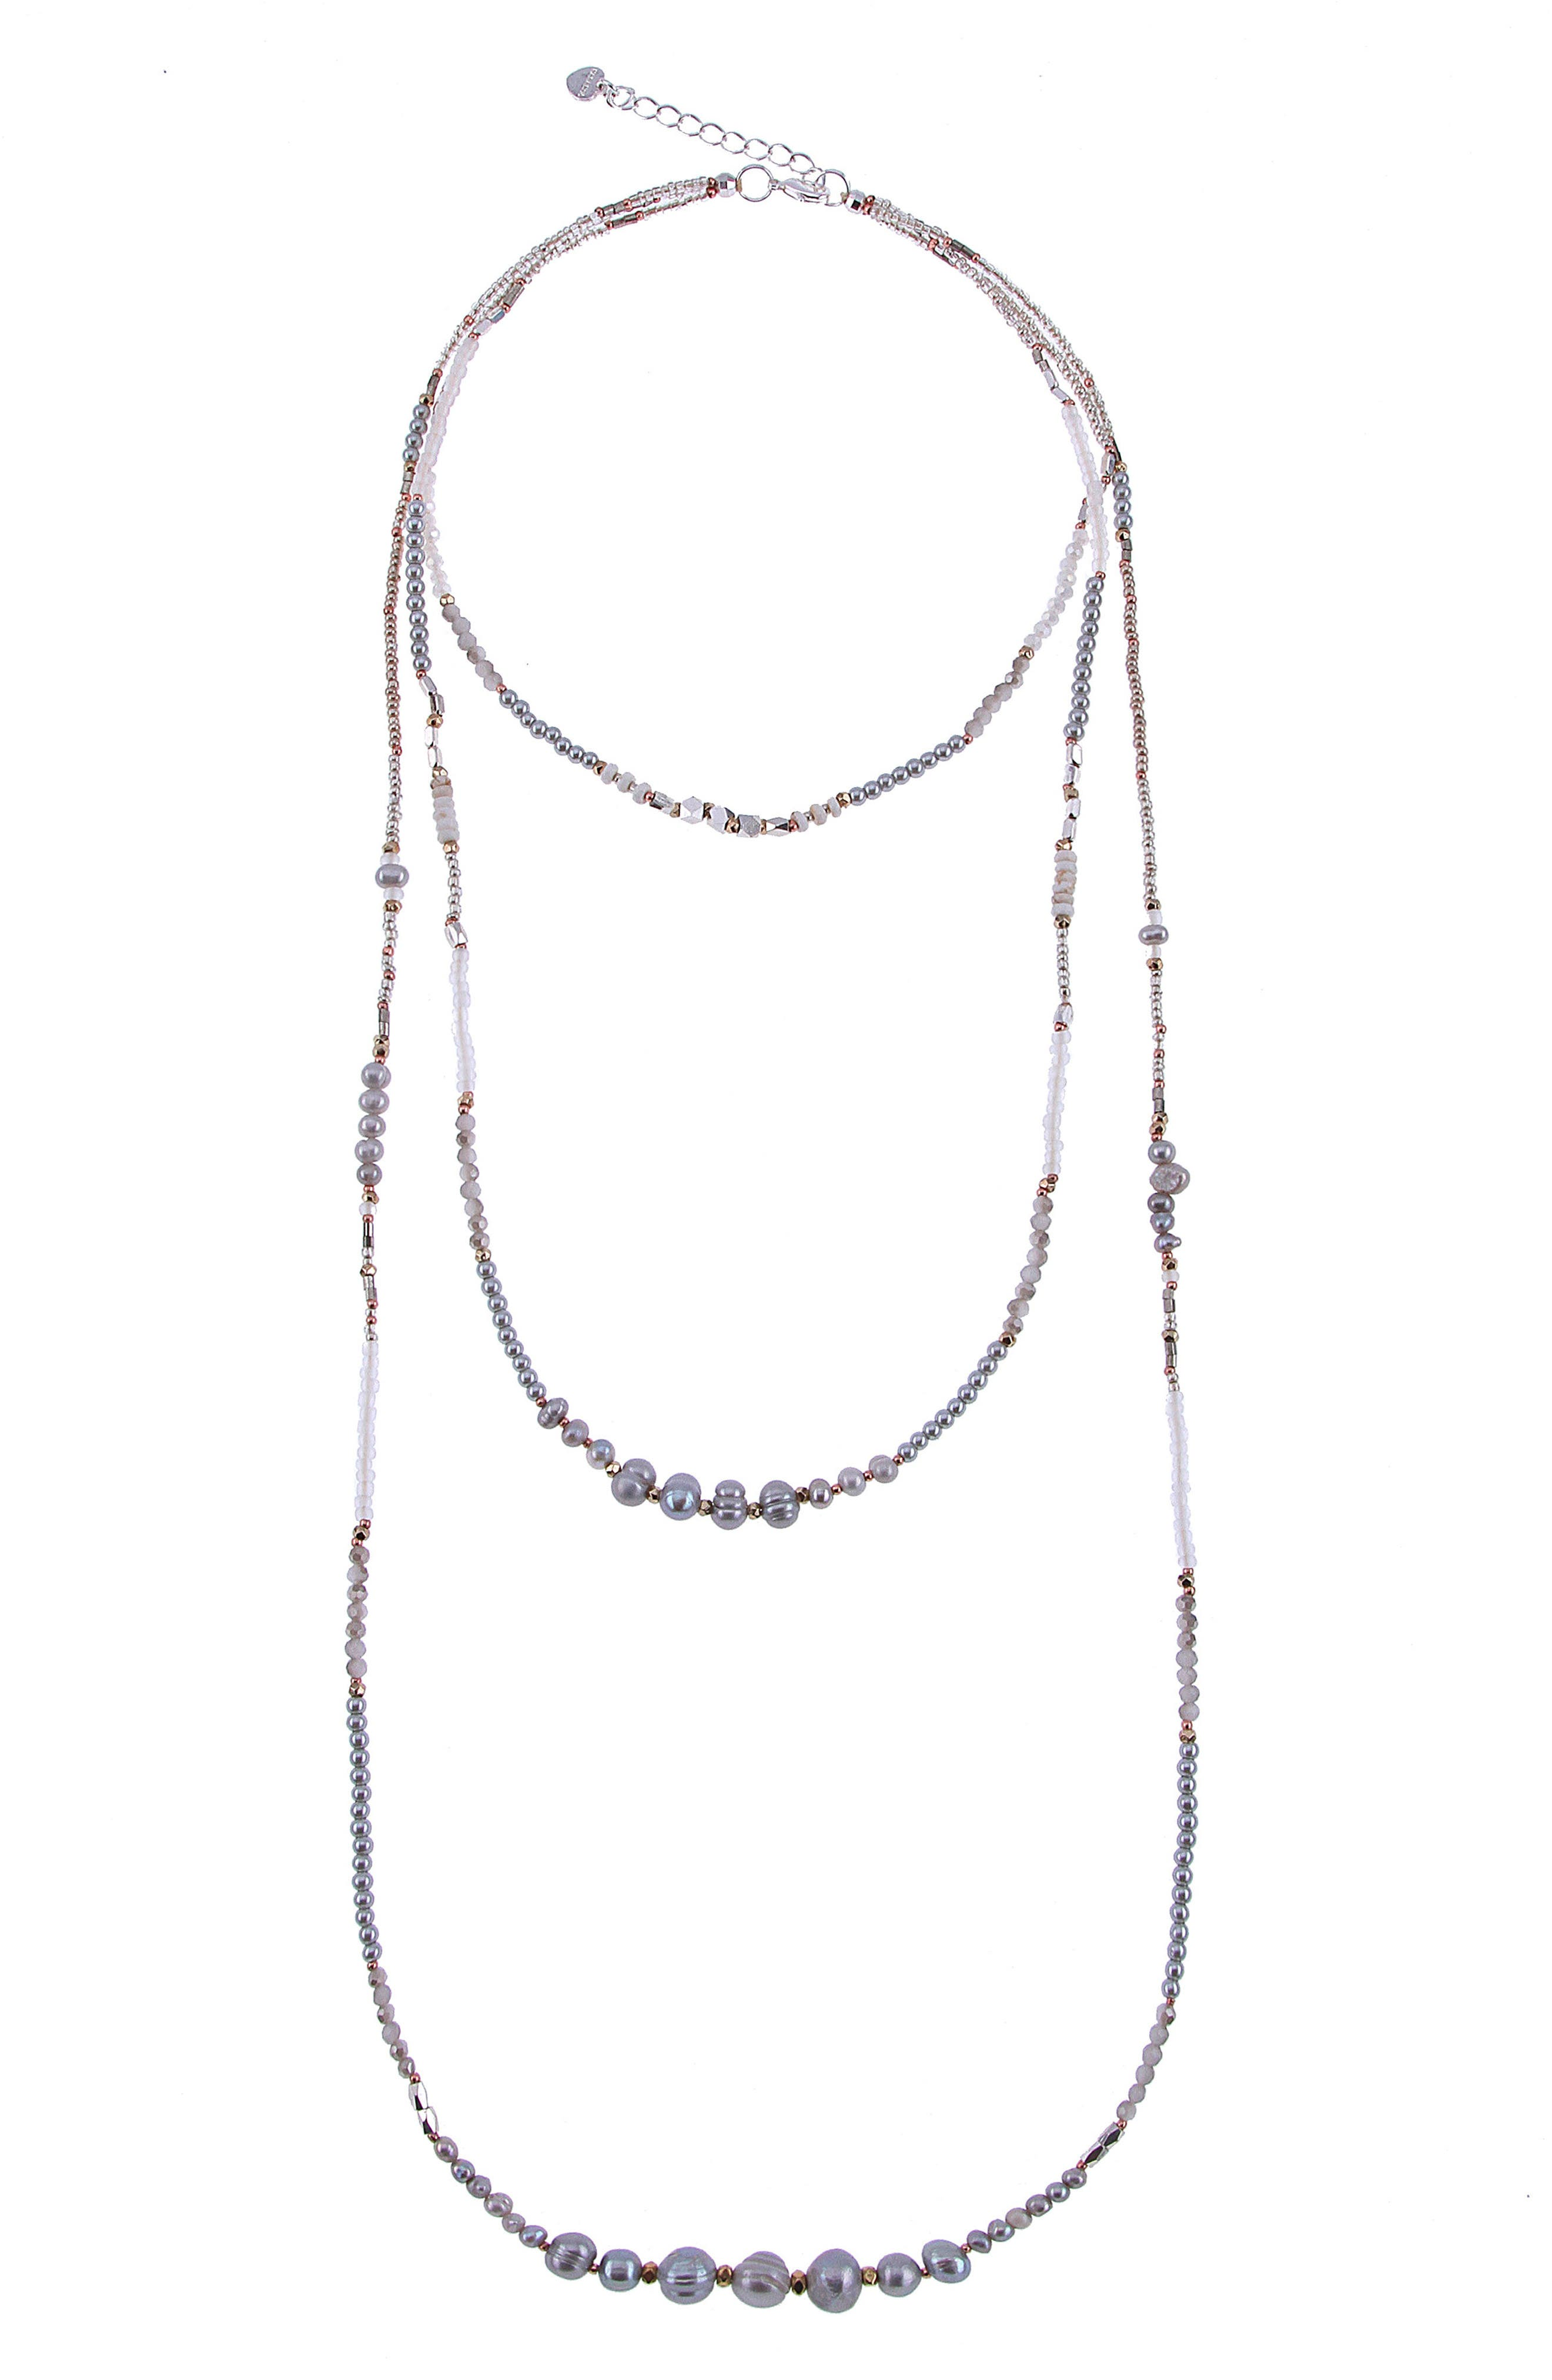 Triple Strand Beaded Freshwater Pearl Necklace,                         Main,                         color, 040